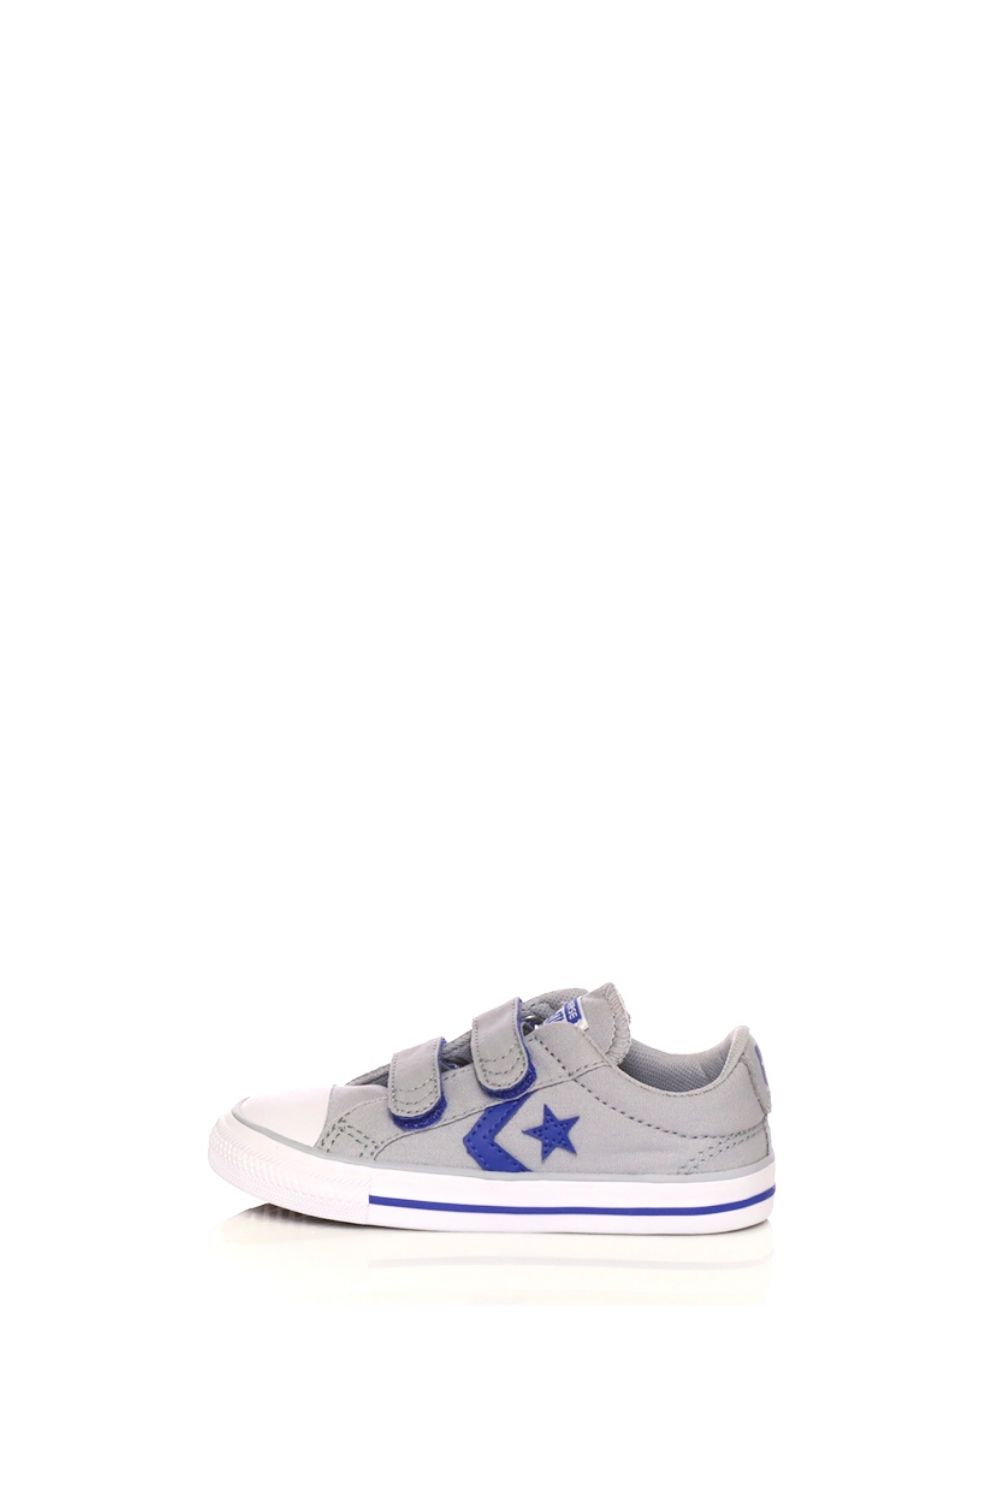 CONVERSE - Βρεφικά Sneakers Converse Star Player Ox Γκρι